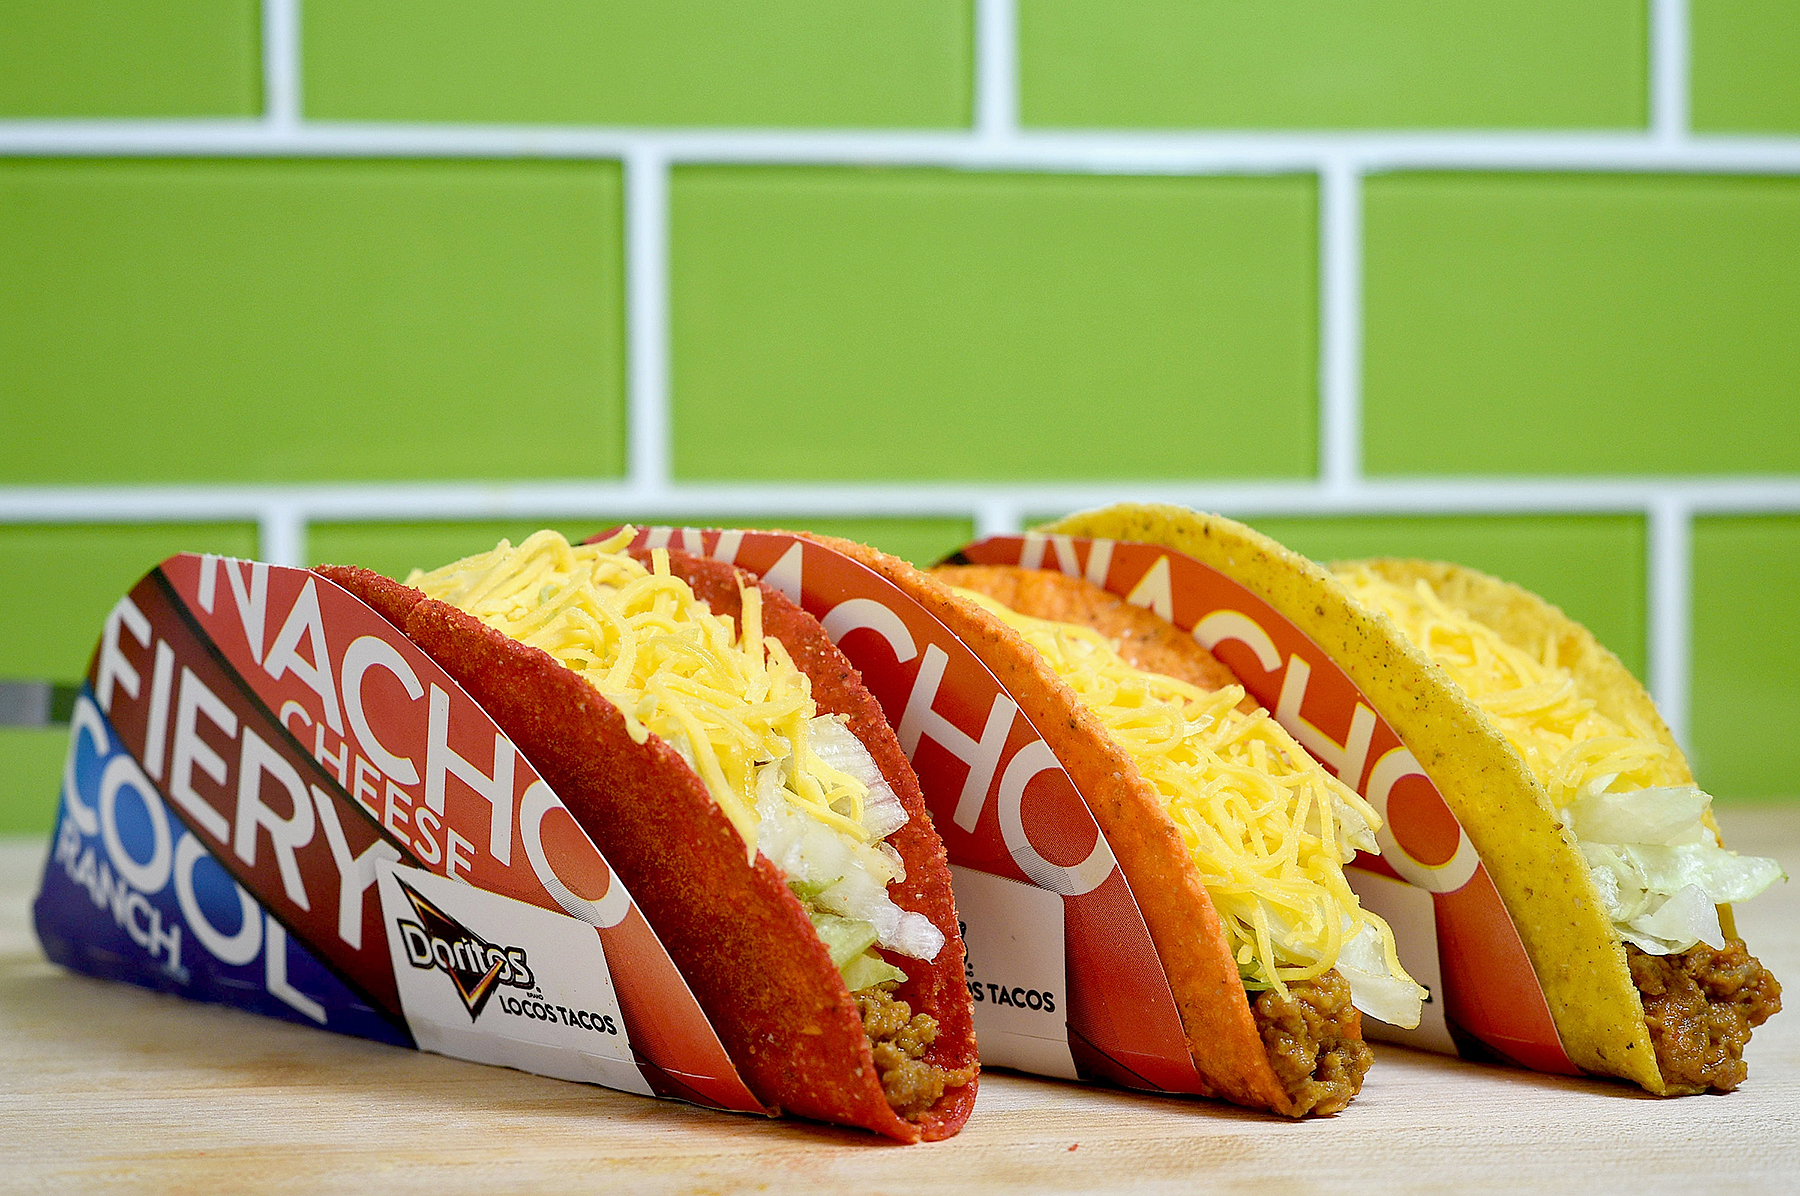 Taco Bell giving away free tacos today: How to get yours